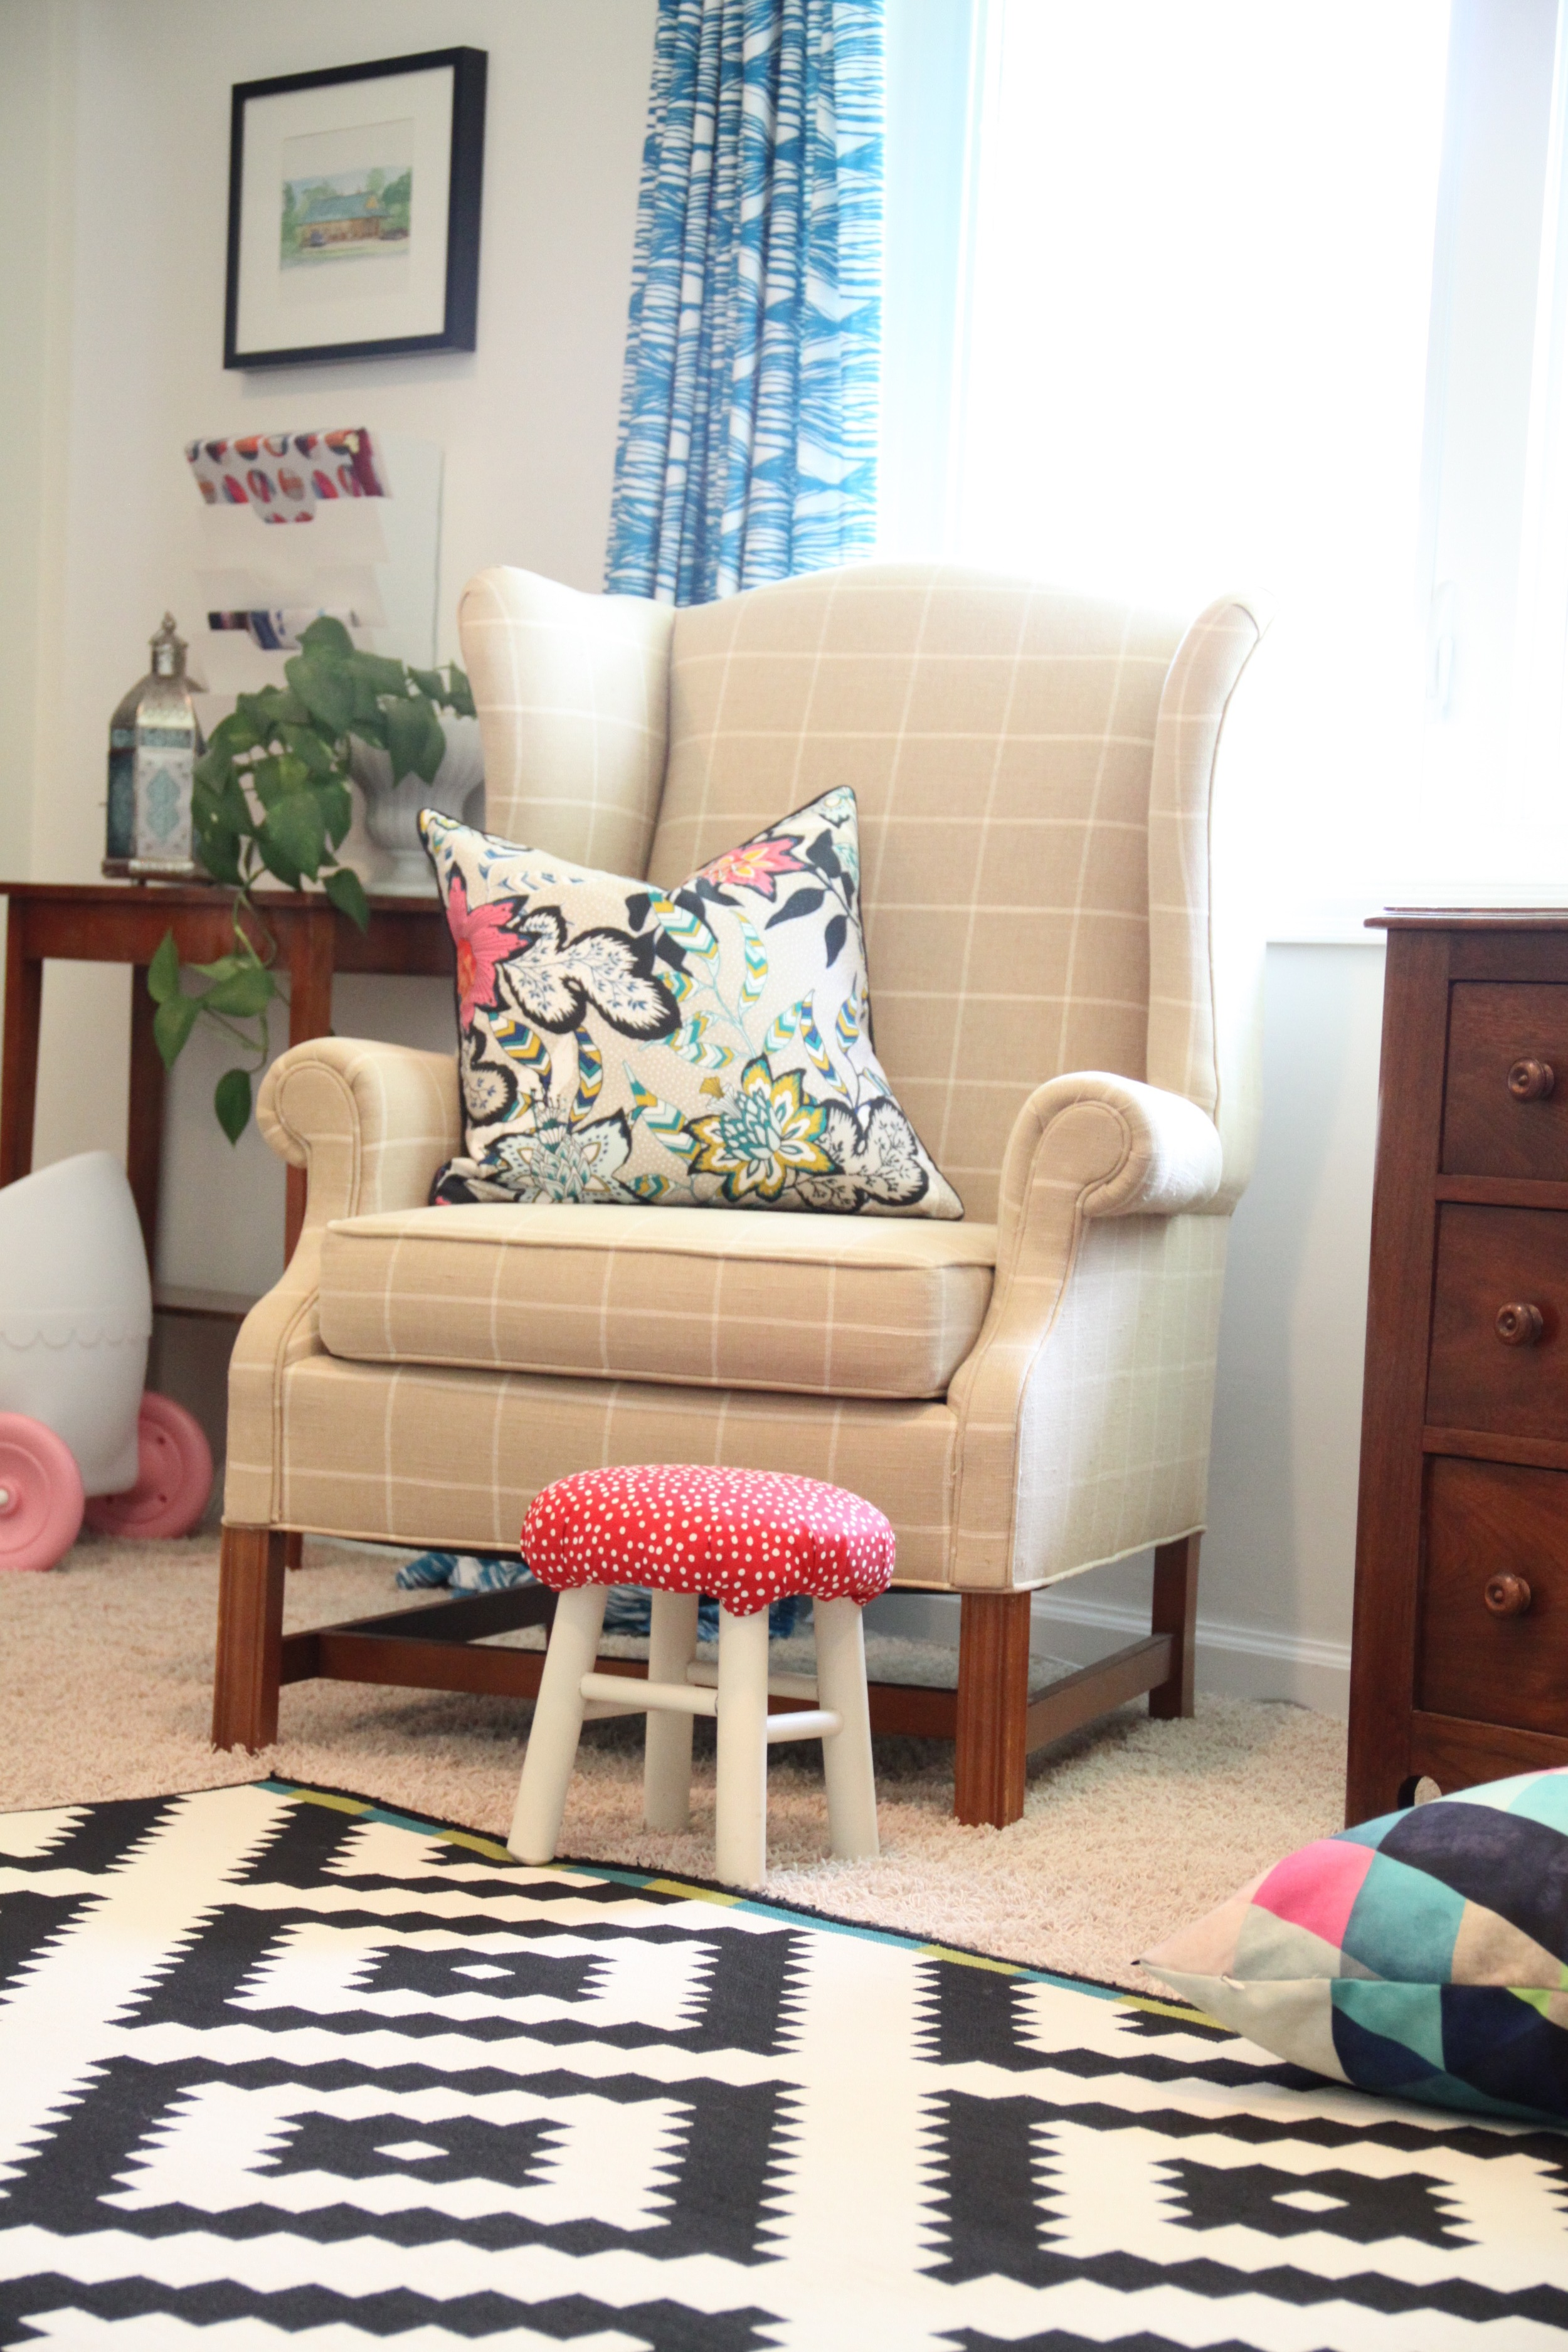 Living Room with Stool and Wingback Chairs